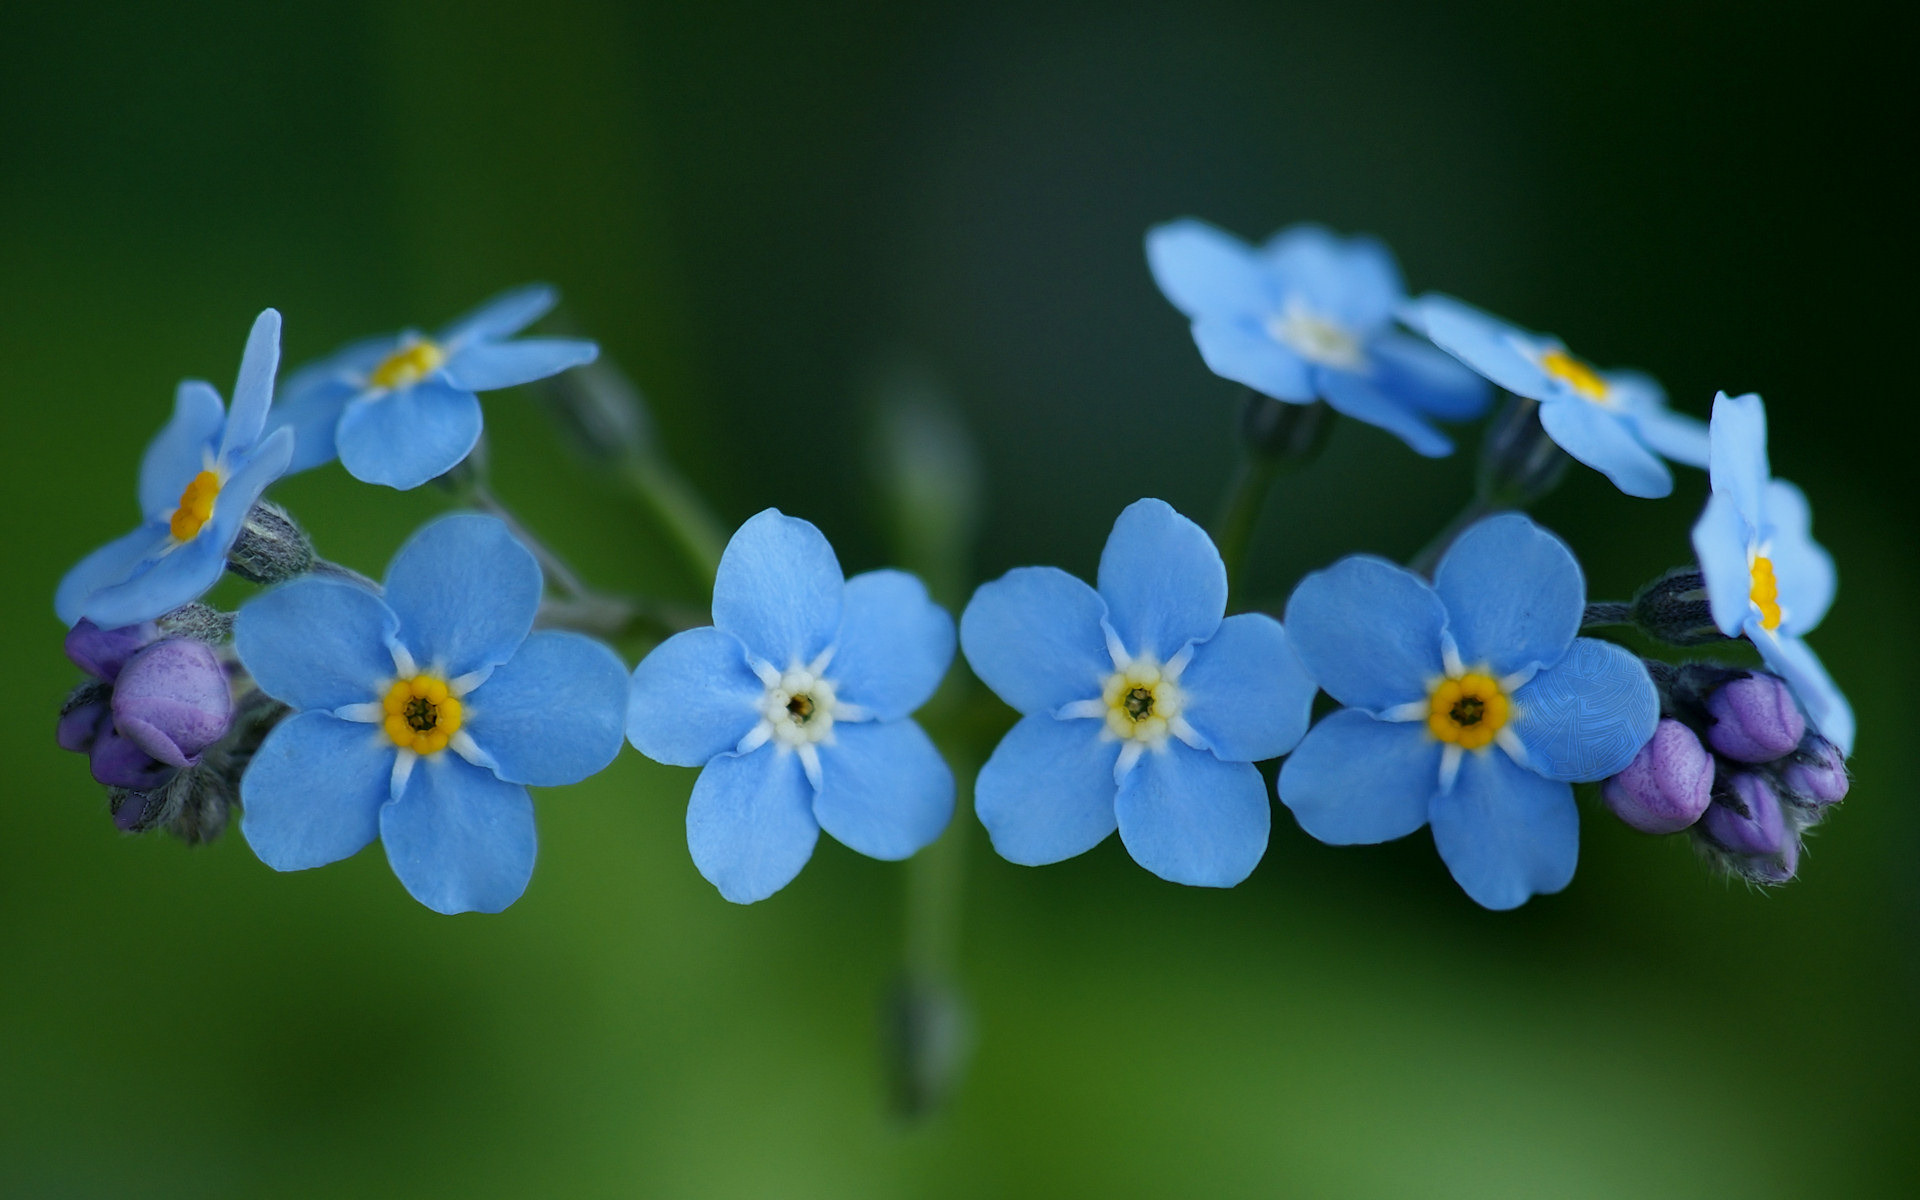 original wallpaper download: Beautiful little flowers forget-me - 1920x1200